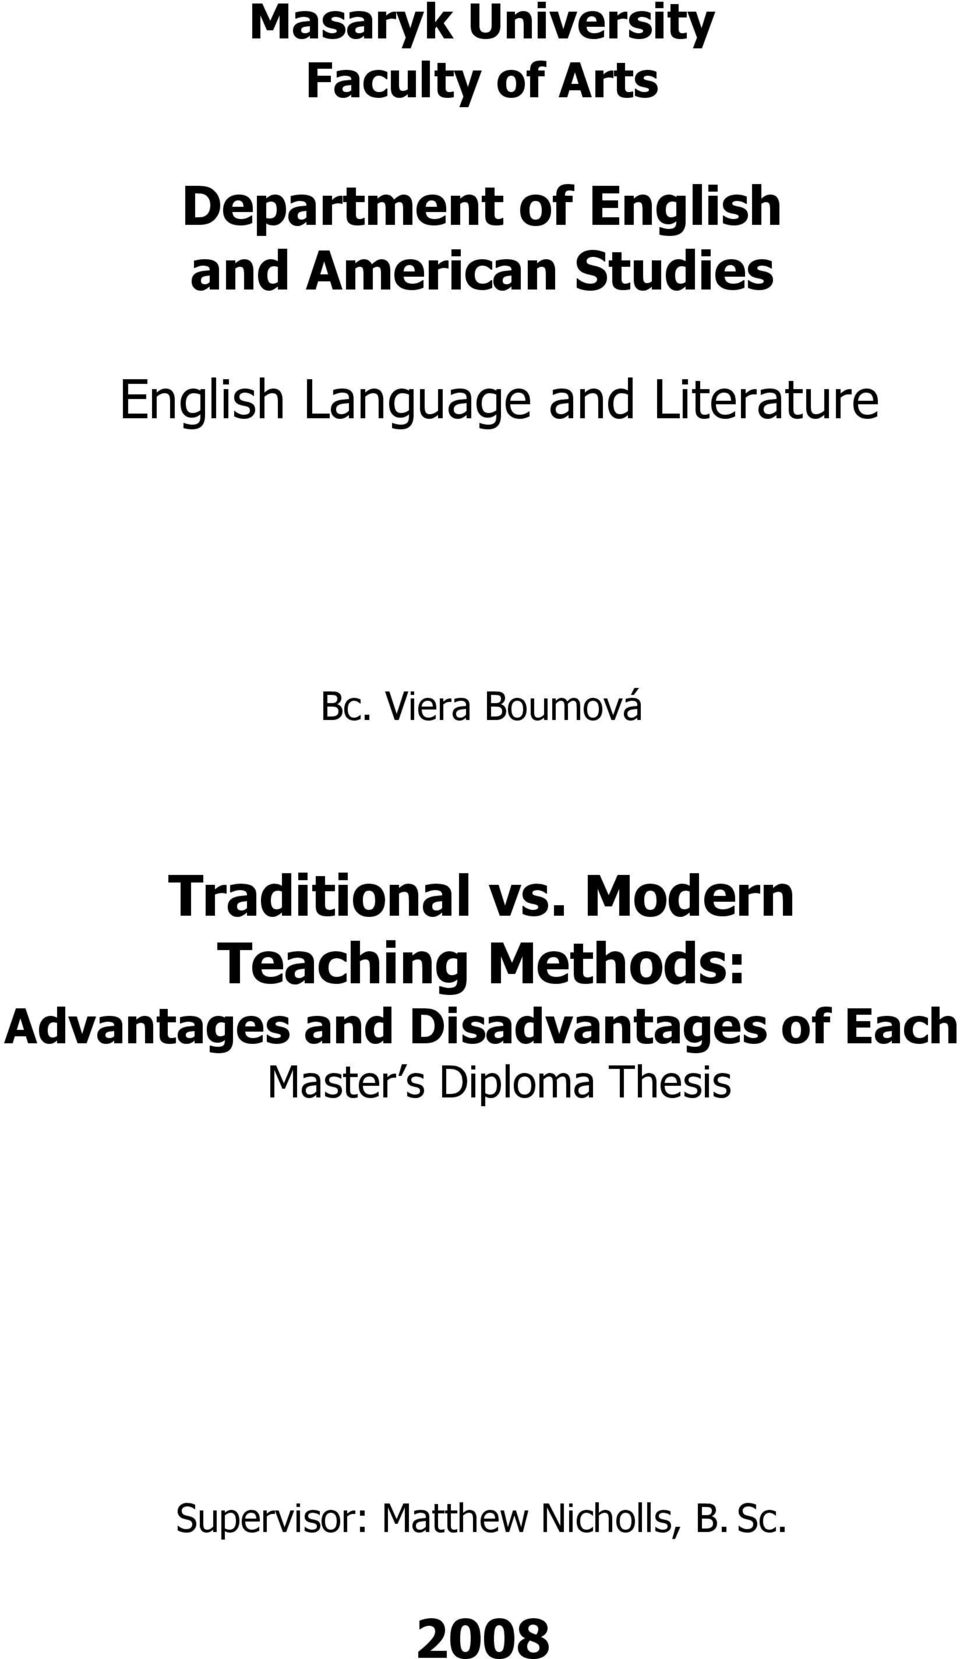 thesis in english teaching Using games as an aid and motivation in language lessons sallamari  blomberg master's thesis english philology university of oulu spring 2014.